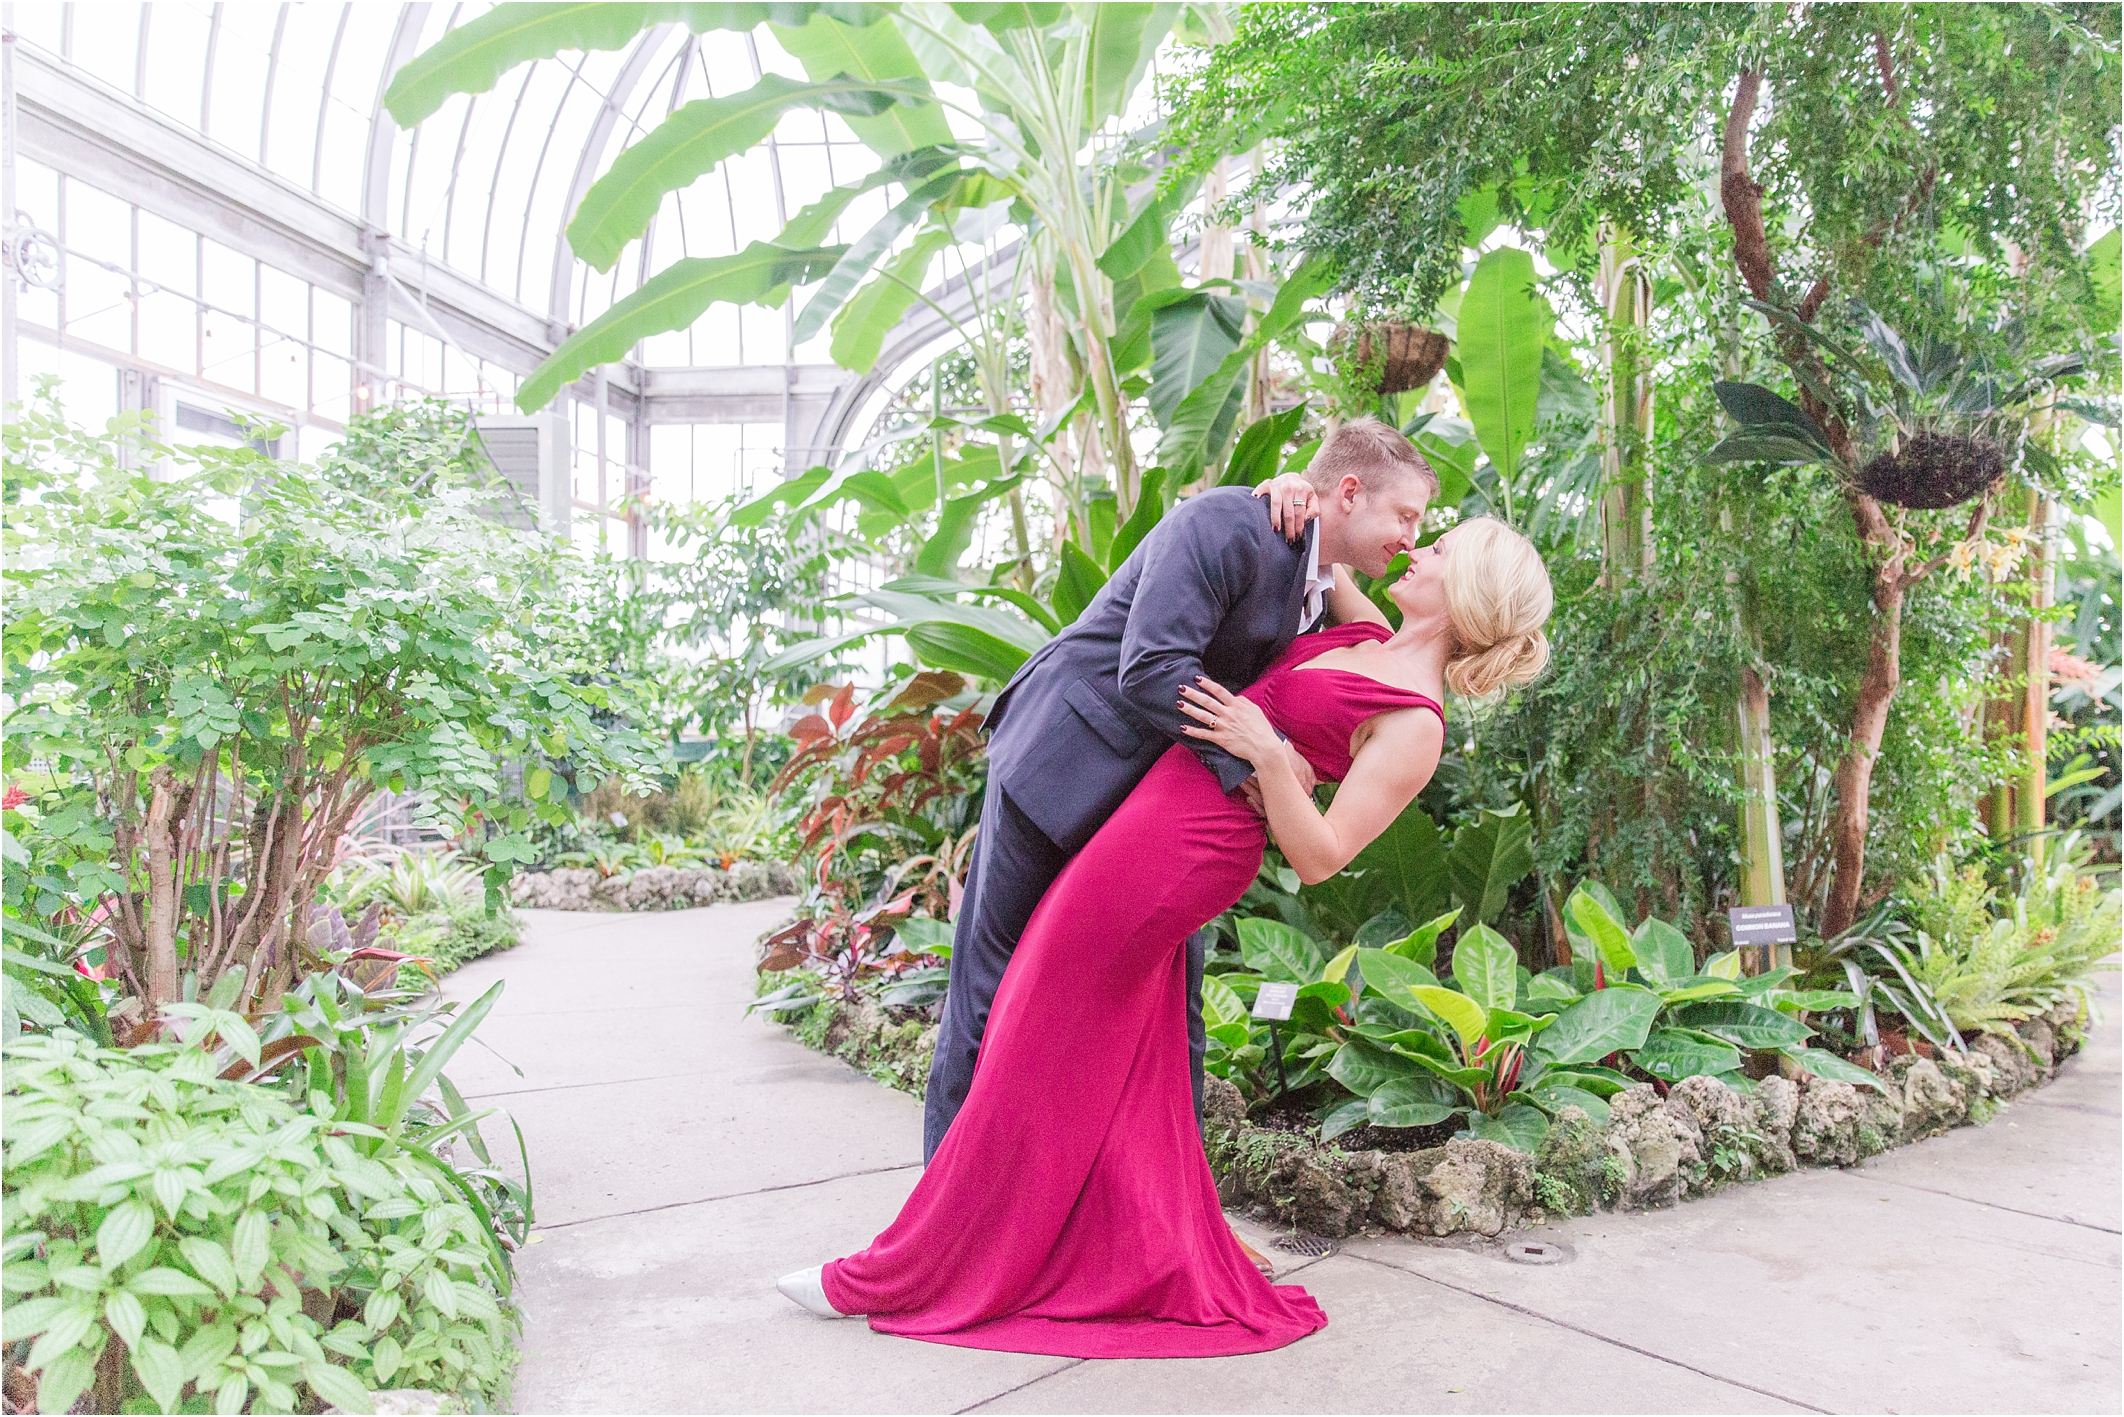 elegant-classic-belle-isle-conservatory-engagement-photos-in-detroit-mi-by-courtney-carolyn-photography_0020.jpg